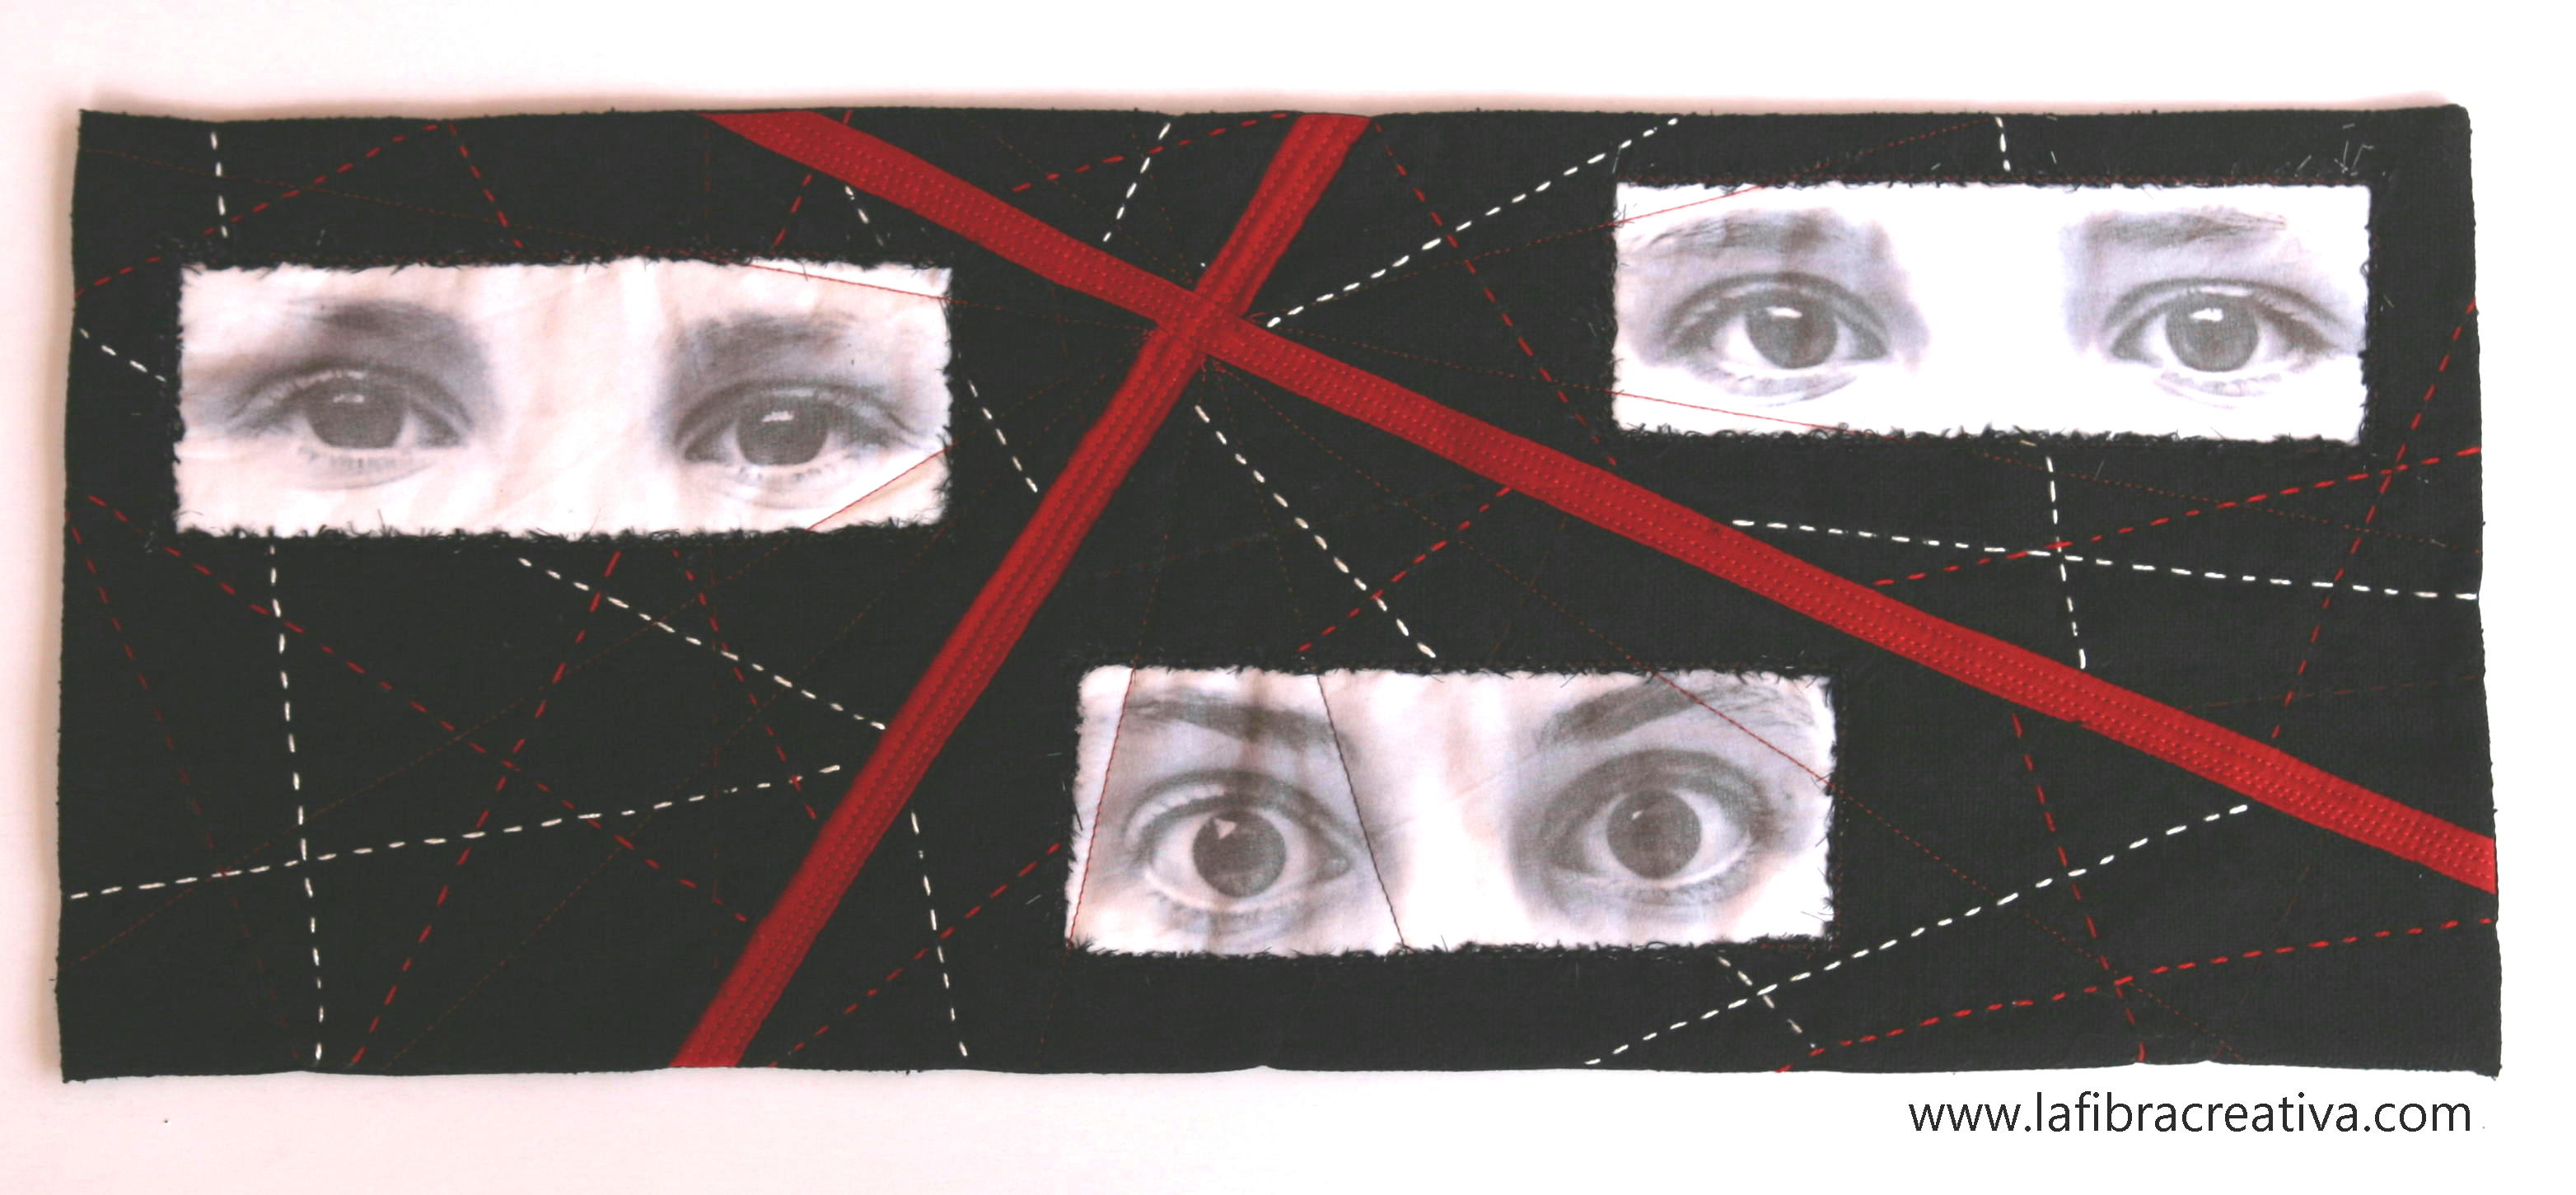 art quilt France Buyle Youth at the crossroads exposición EQA 2012